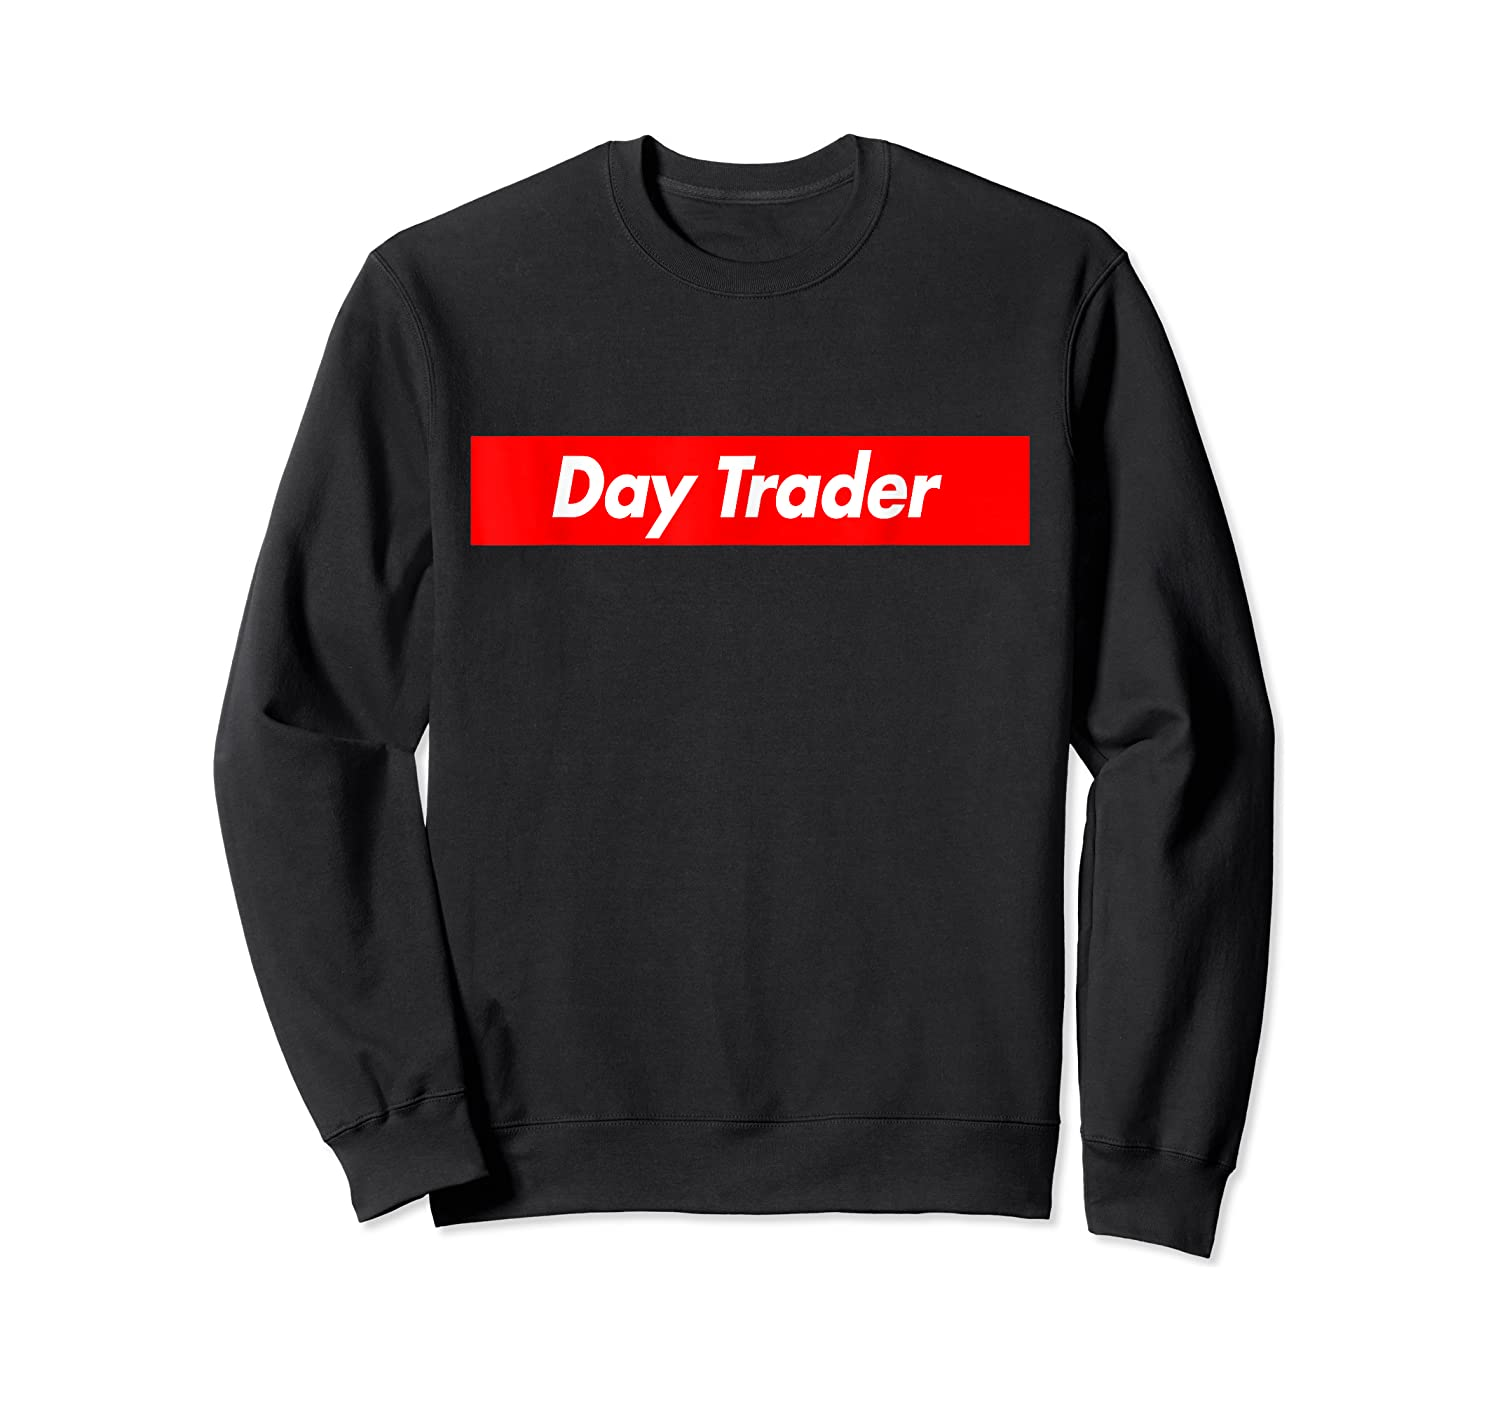 Day Trader Red Box Logo Funny T-shirt Crewneck Sweater